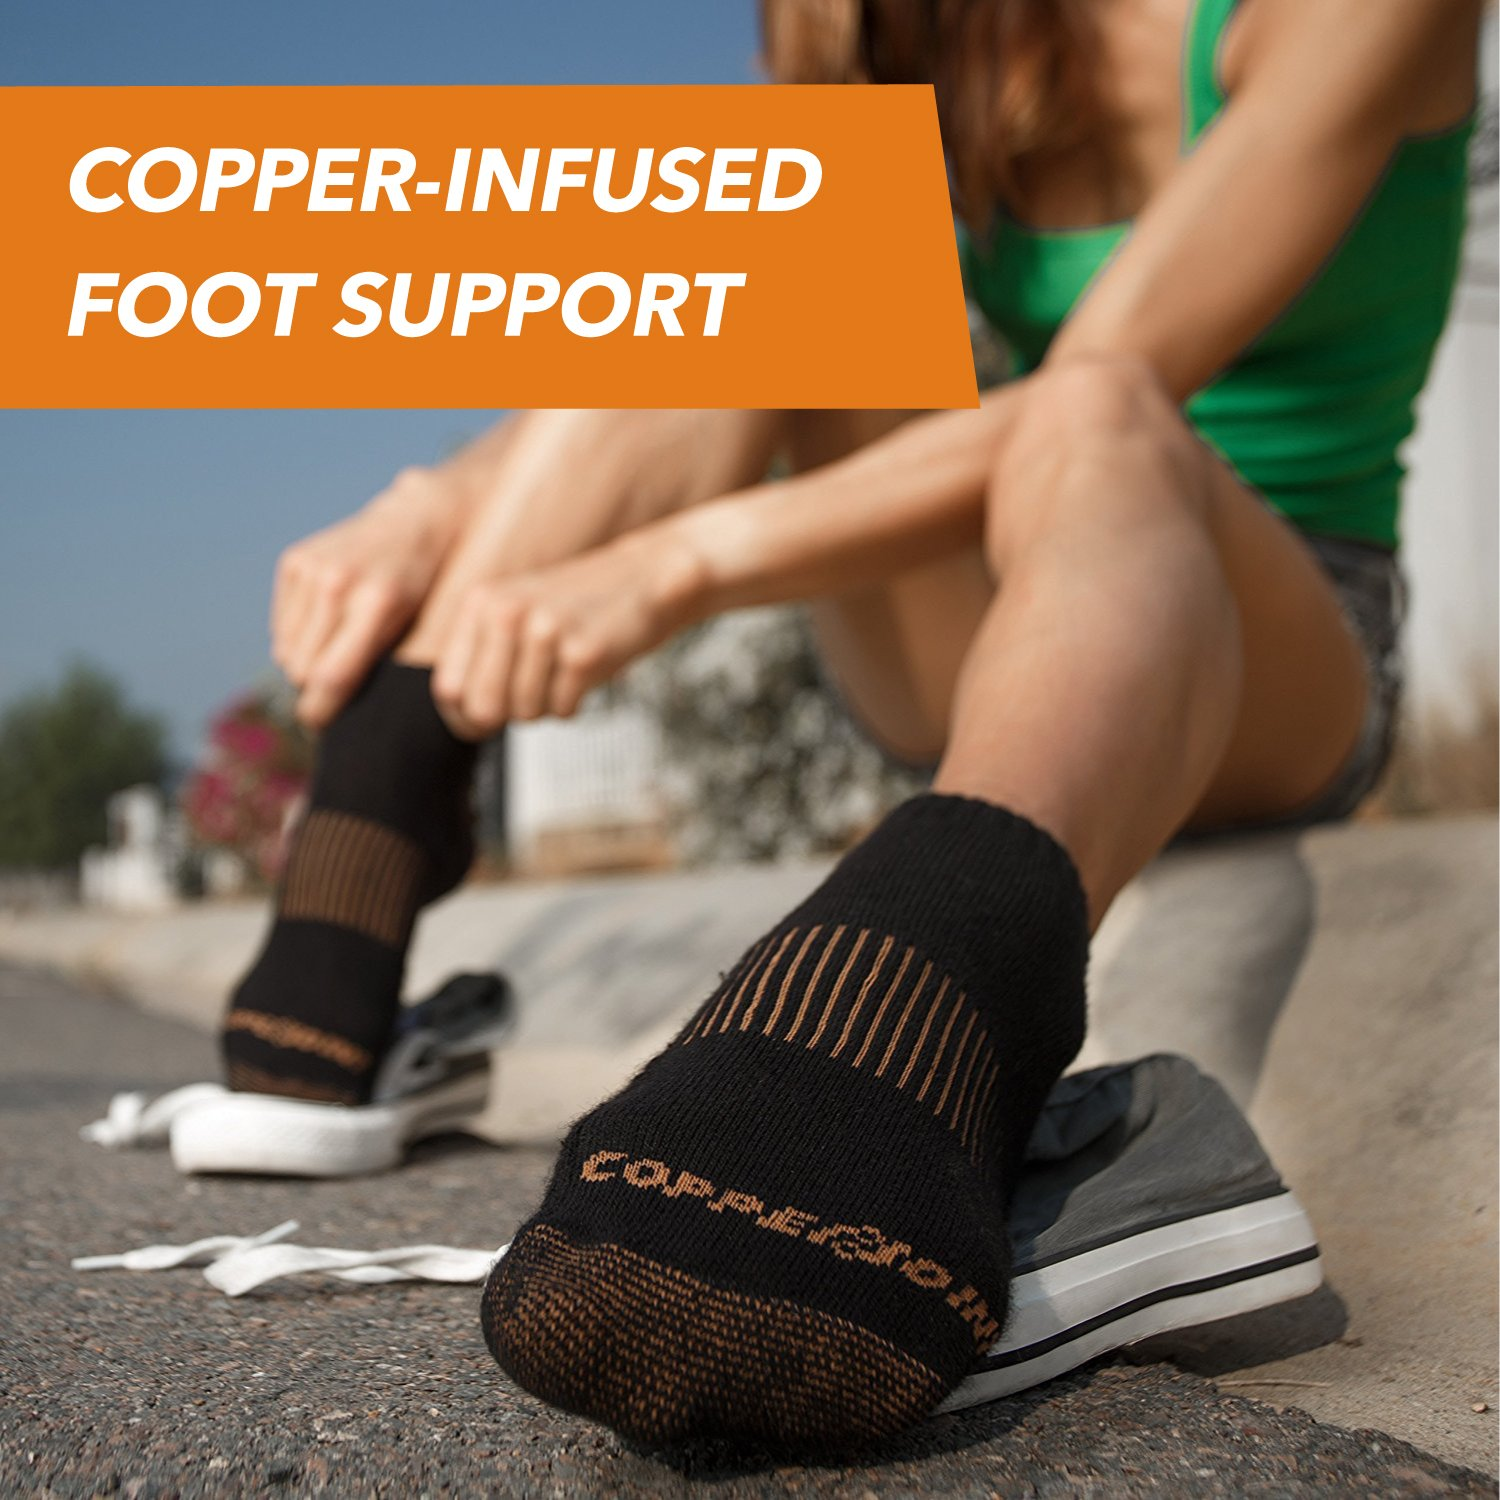 CopperJoint Copper-Infused Compression Running Socks Pair